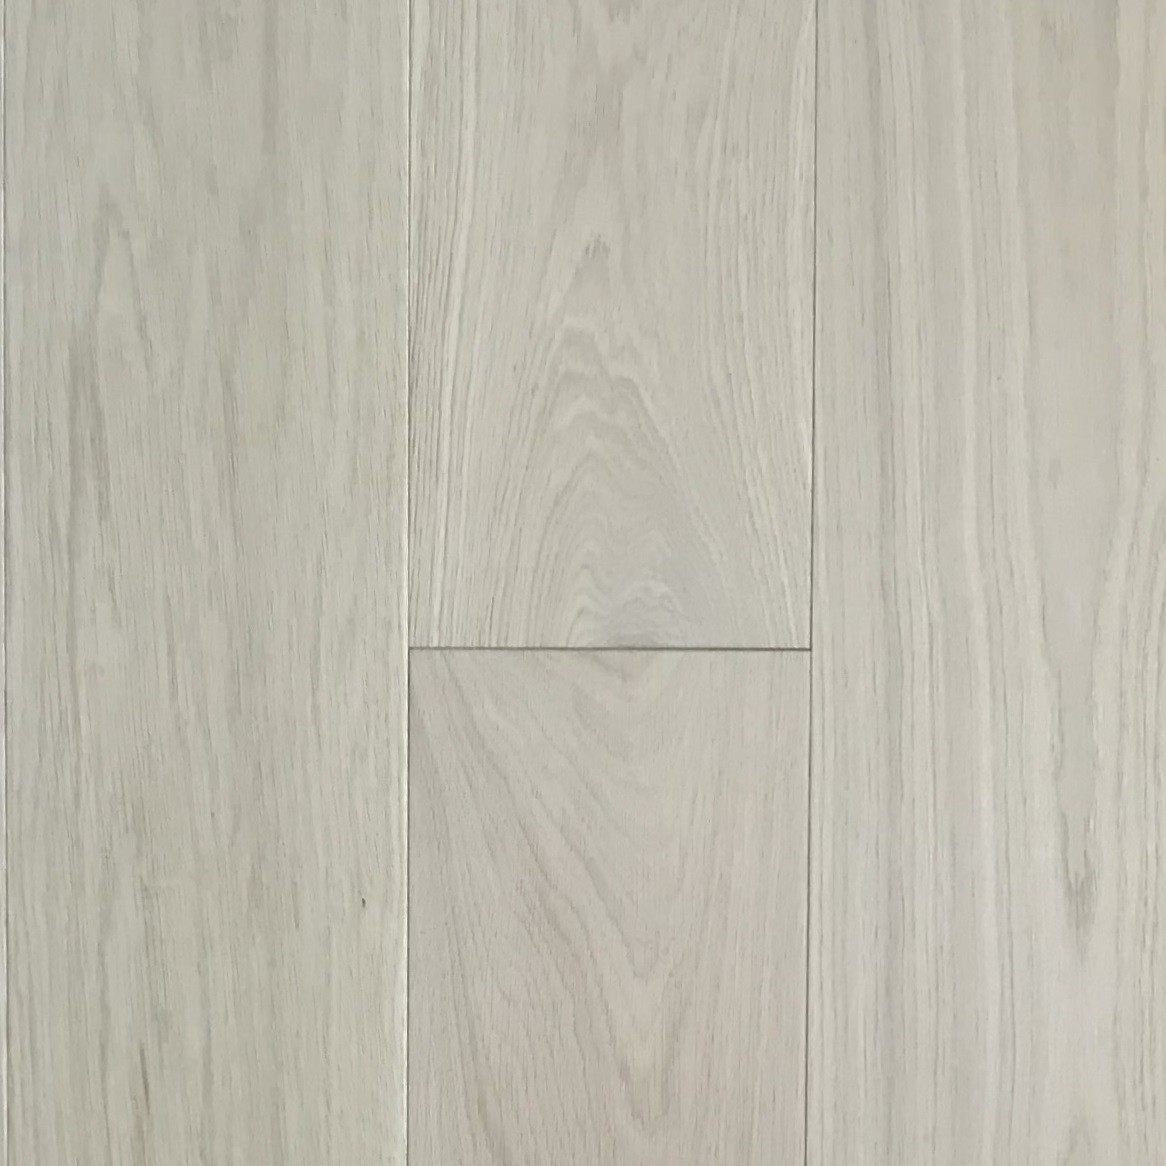 LIVIGNA ENGINEERED WOOD FLOORING OAK BRUSHED INVISIBLE LACQUERED  190x1900mm